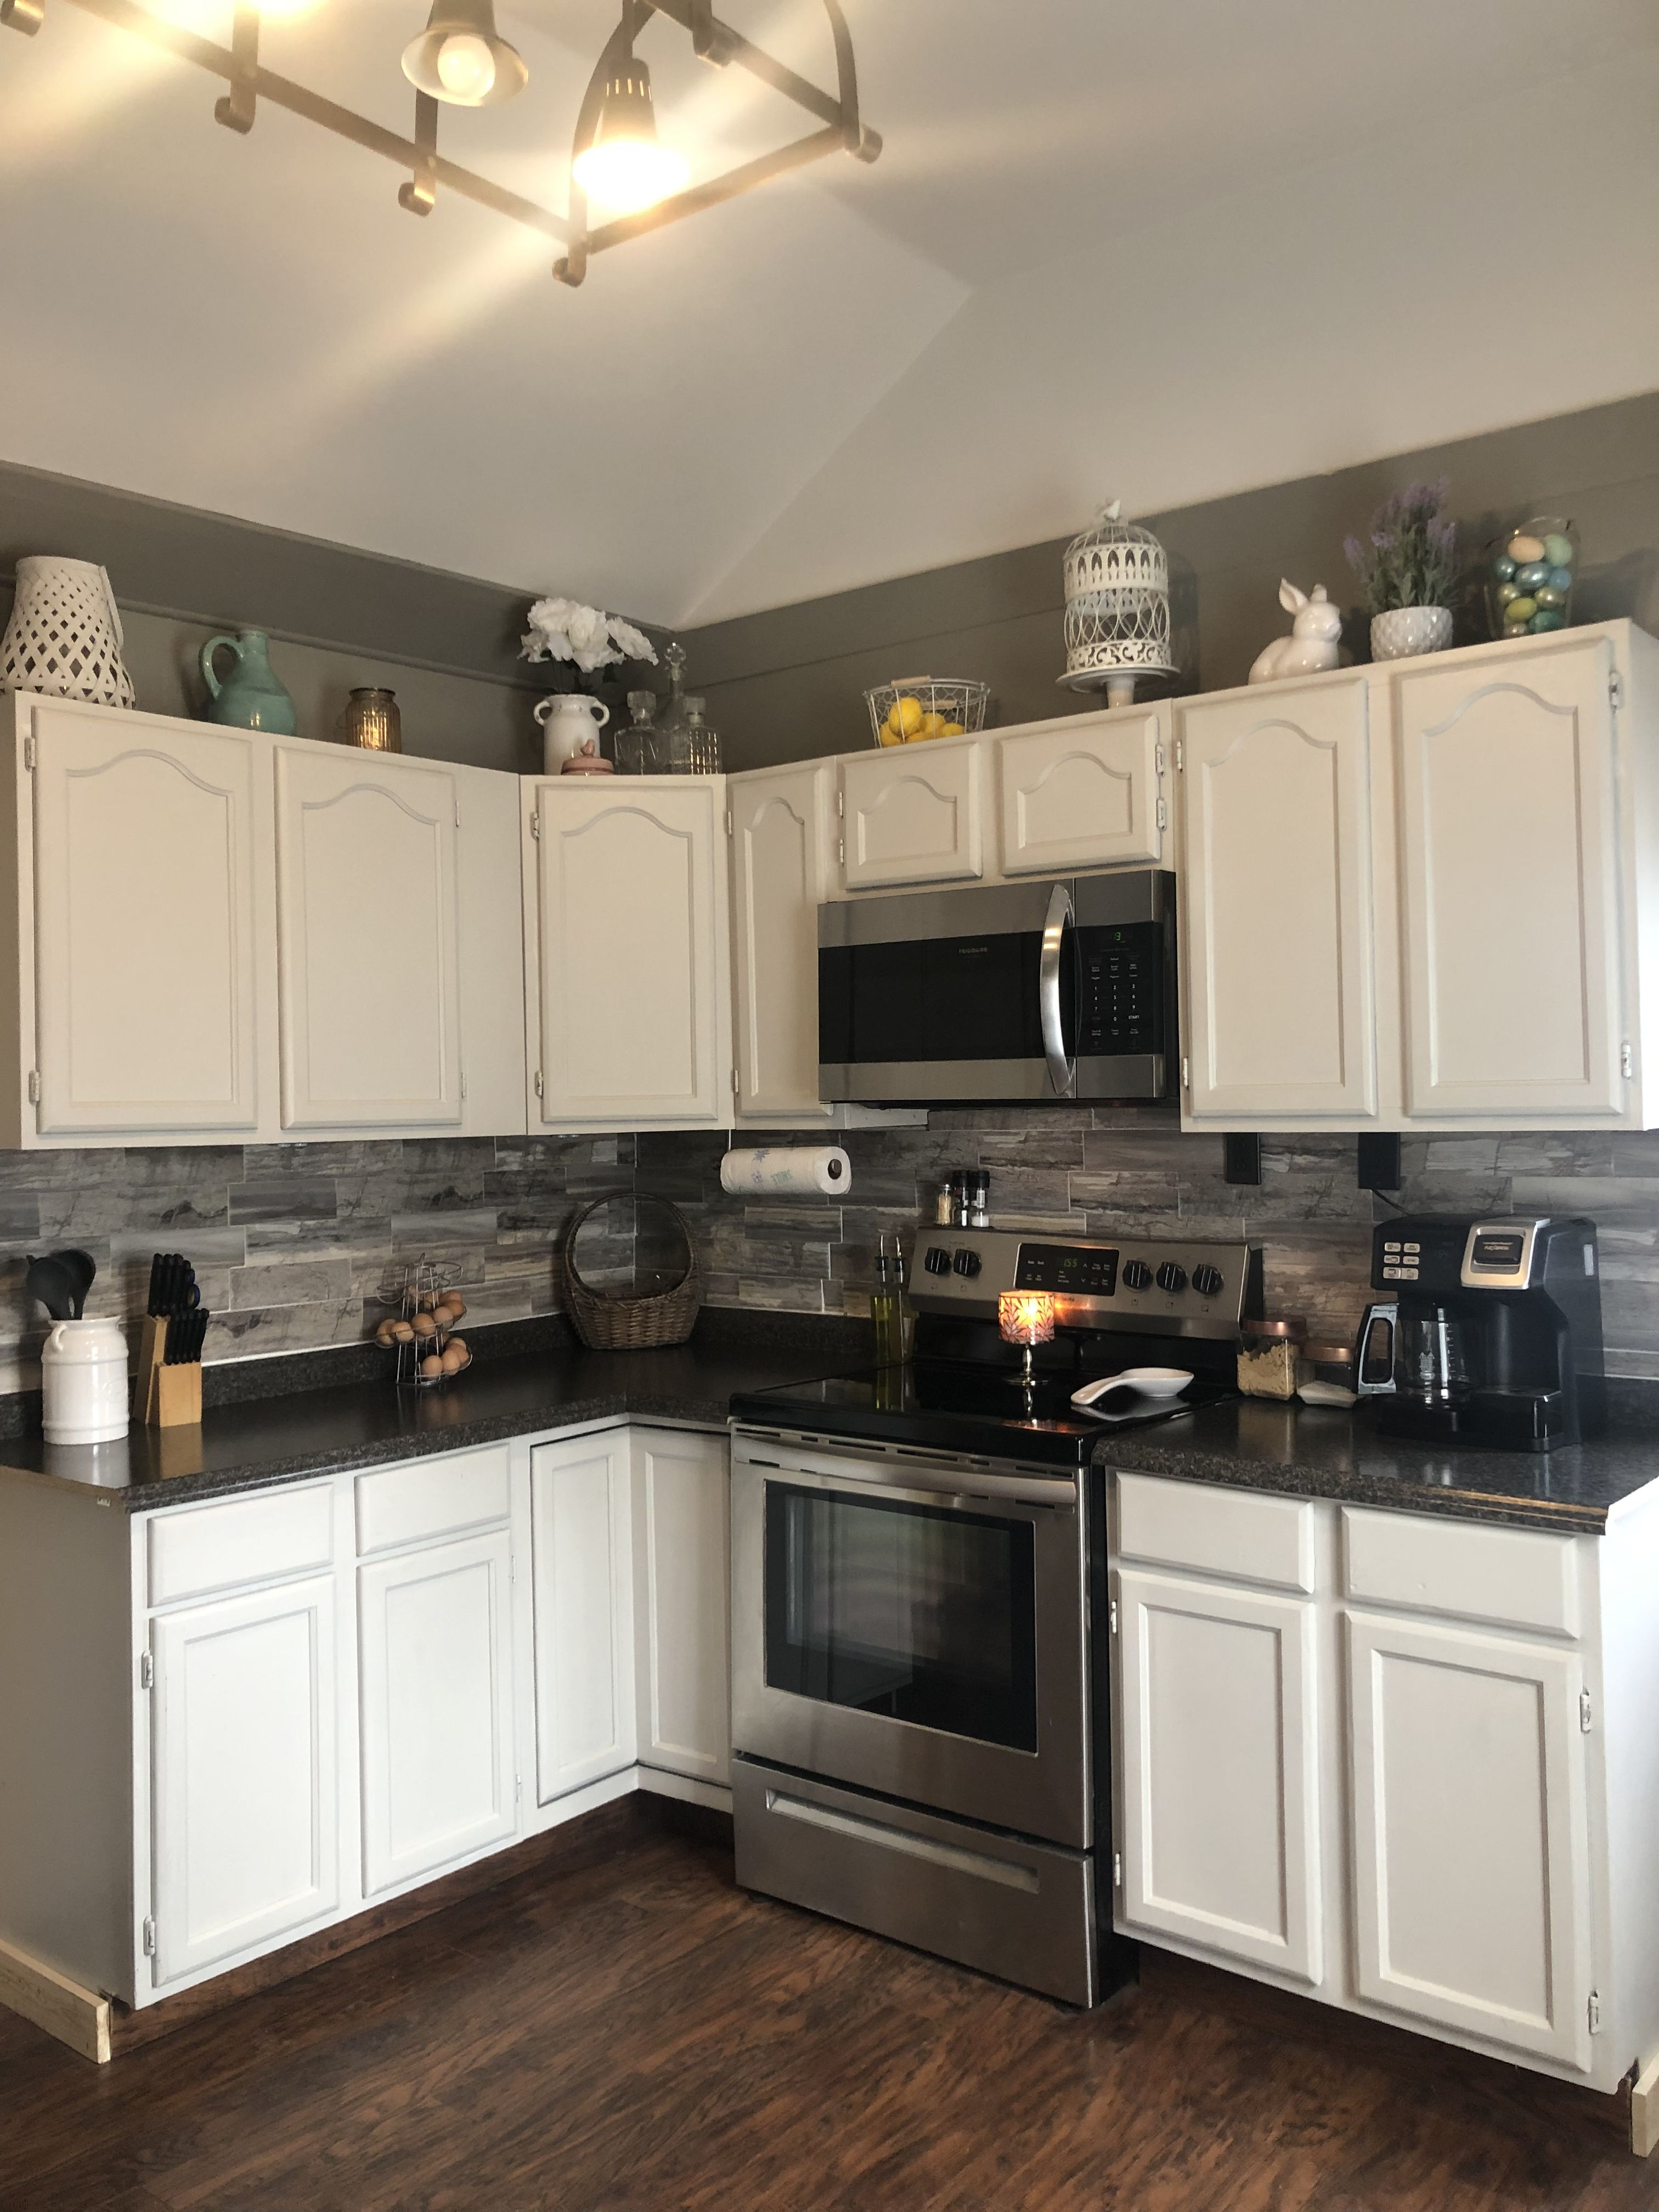 Best After Remodel I Call It 50 Shades Of Gray Remodel 400 x 300